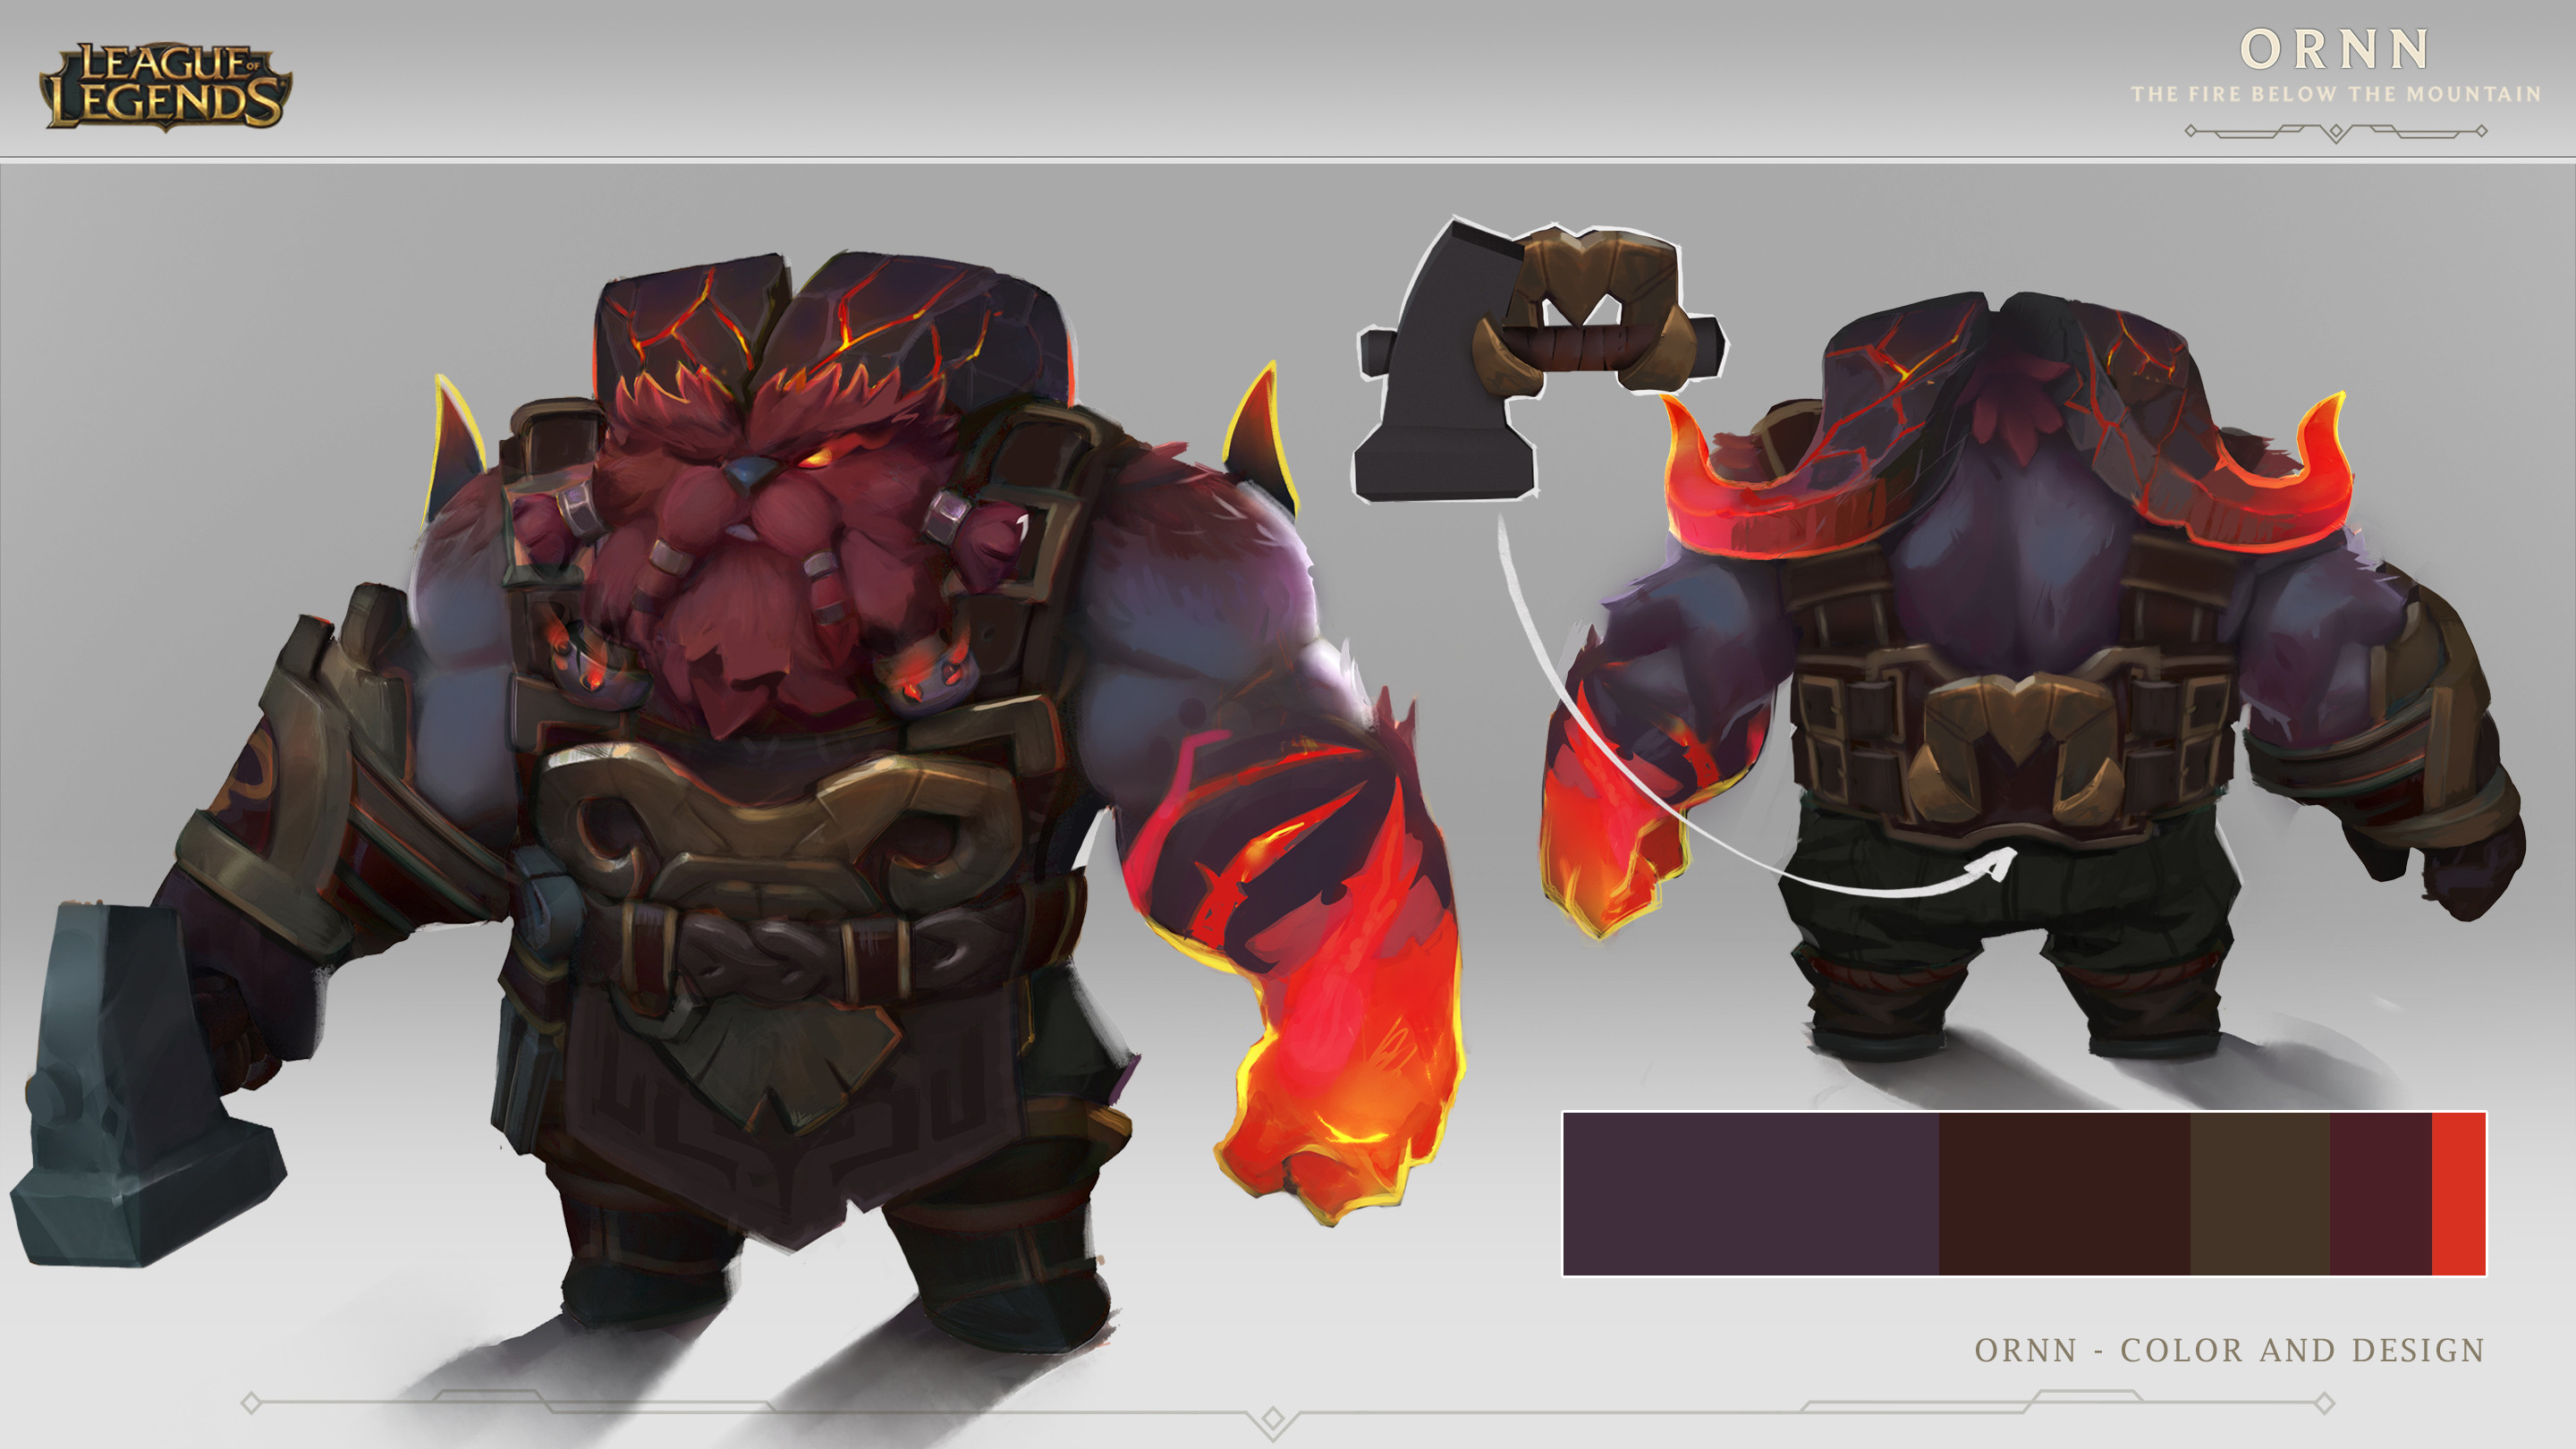 Ornn color and design